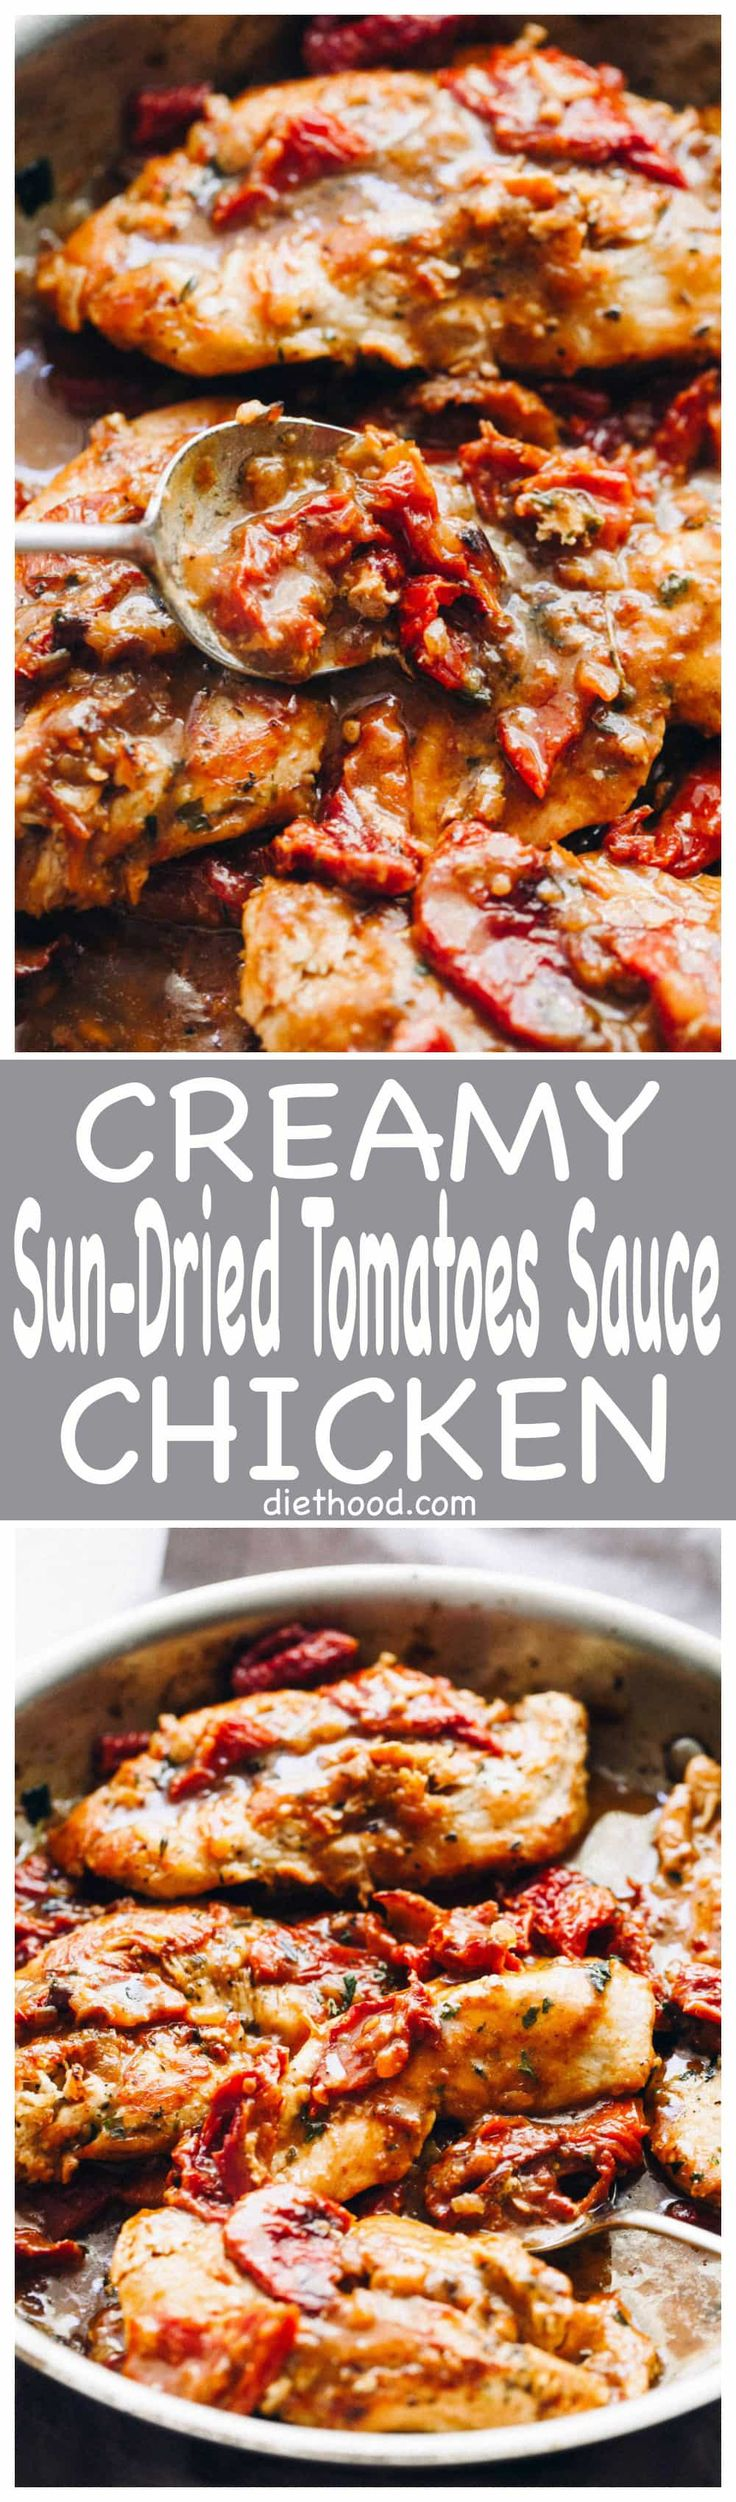 Creamy Sun-Dried Tomato Sauce Chicken: Quick, easy and delicious pan-seared chicken with an amazingly flavorful sun dried tomatoes sauce! It's a 30-minute, one pan meal that you can't resist!